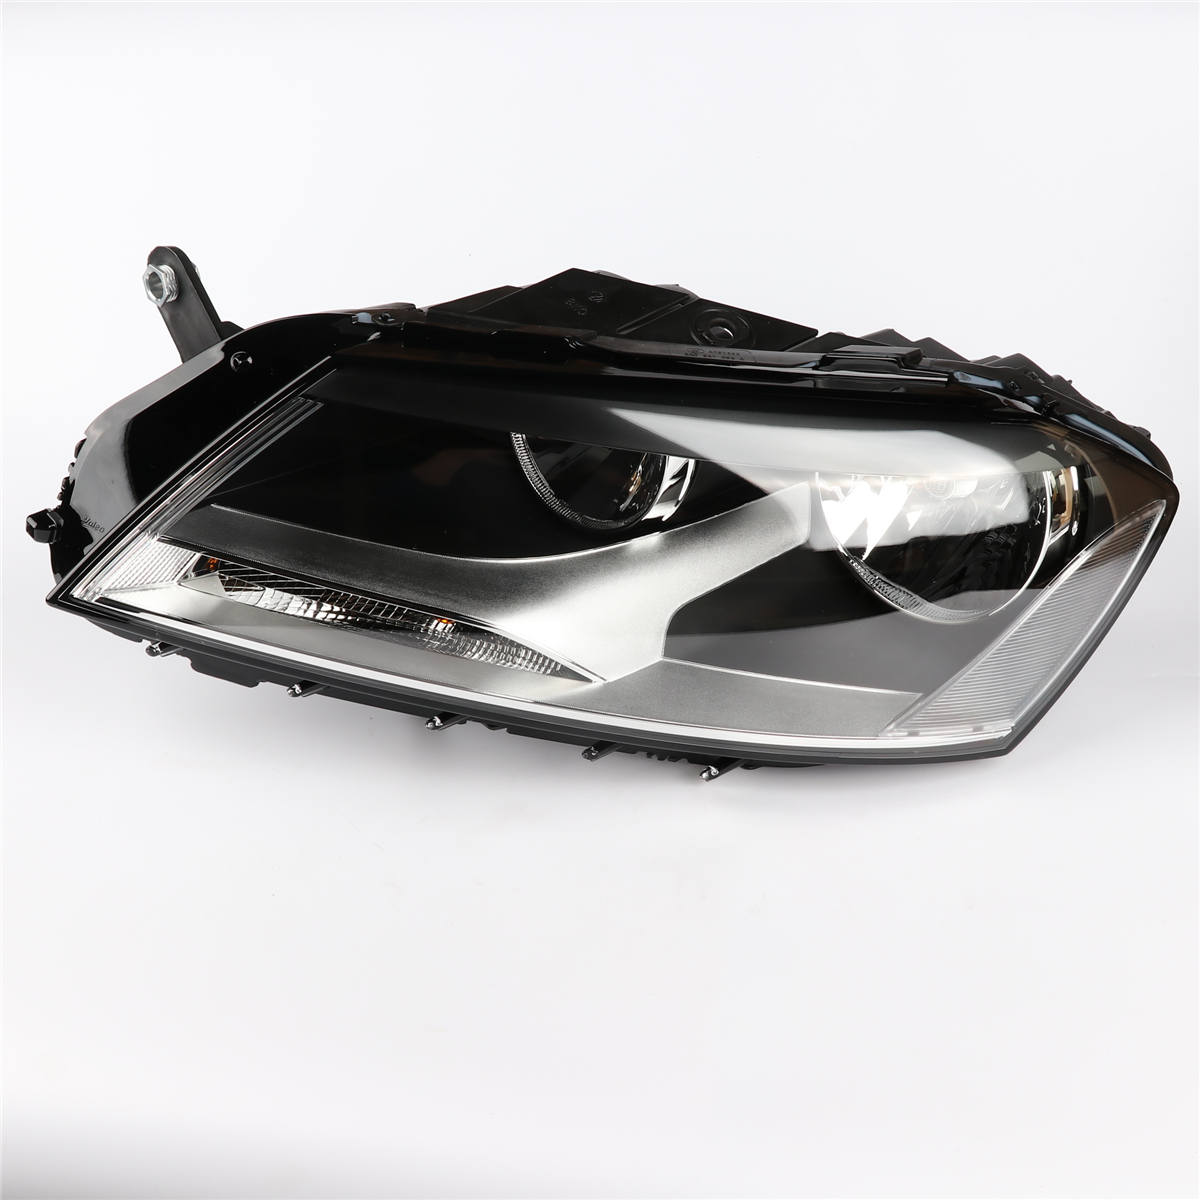 1Pcs OEM Top Quality Right Side Headlight Head Light Lamp Assembly For VW Passat B7 L3AD 941 006 A 3pcs oem black piano paint chrome car center console air condition vents for passat b6 b7 cc r36 3ad 819 701 a 3ad 819 702 a